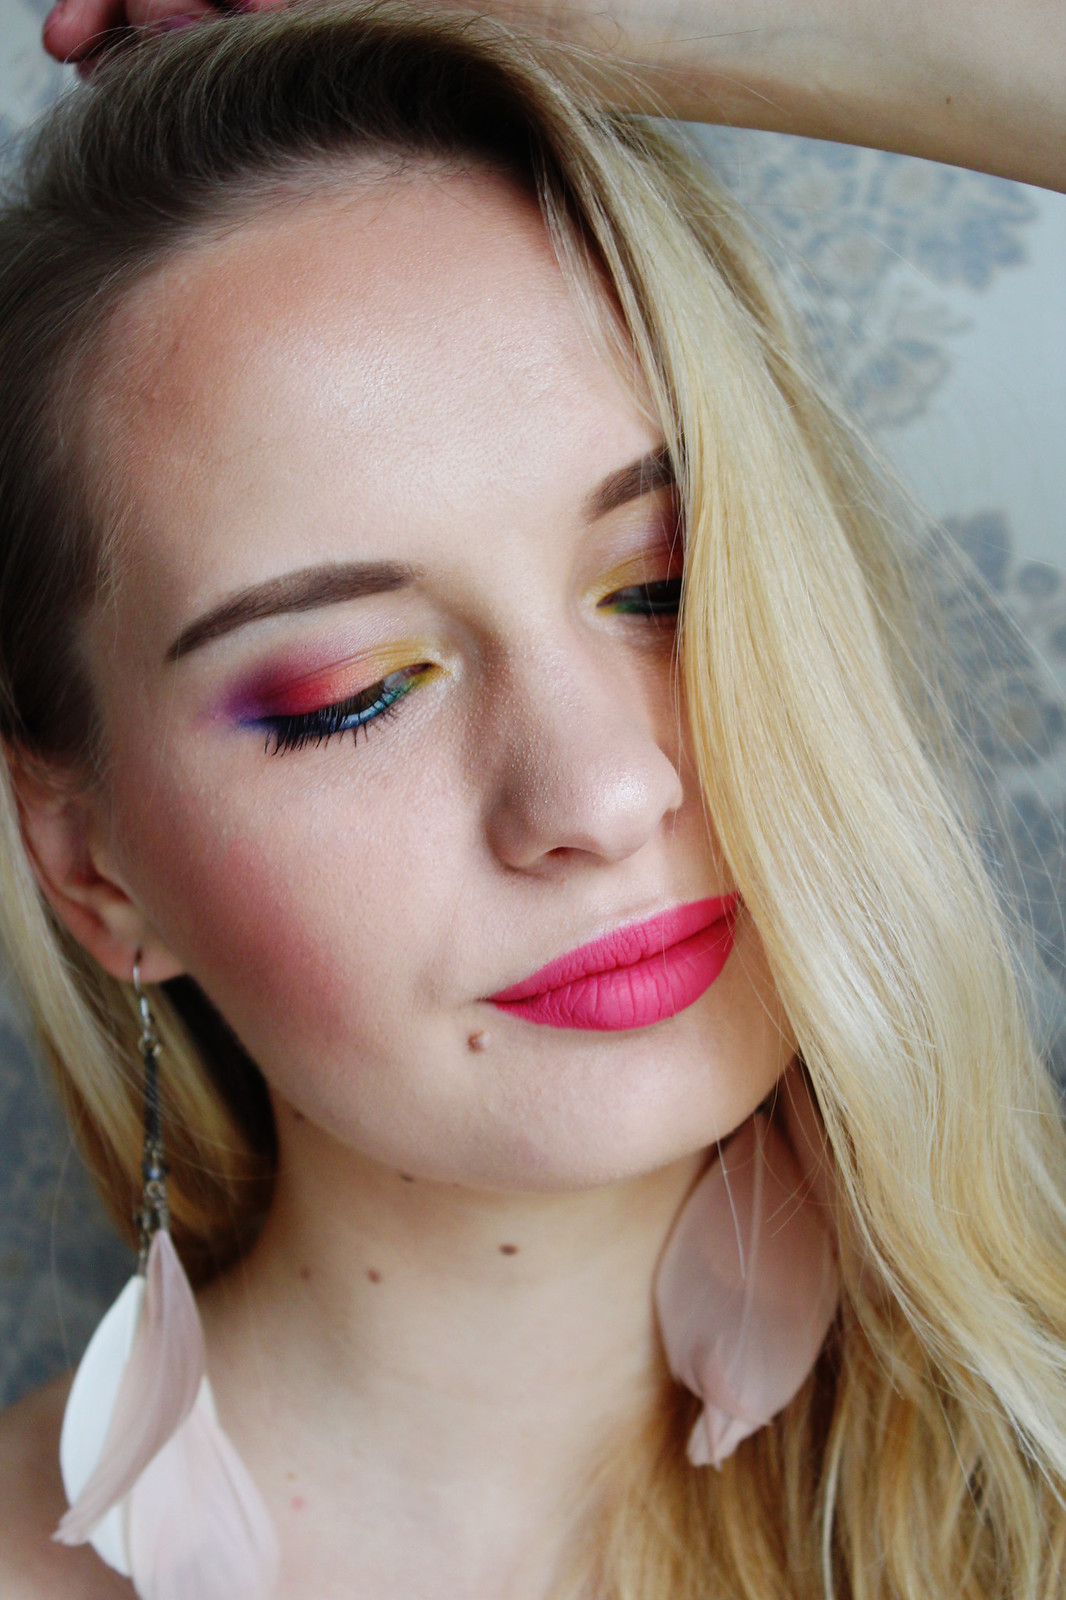 Rainbow eyeshadow makeup look